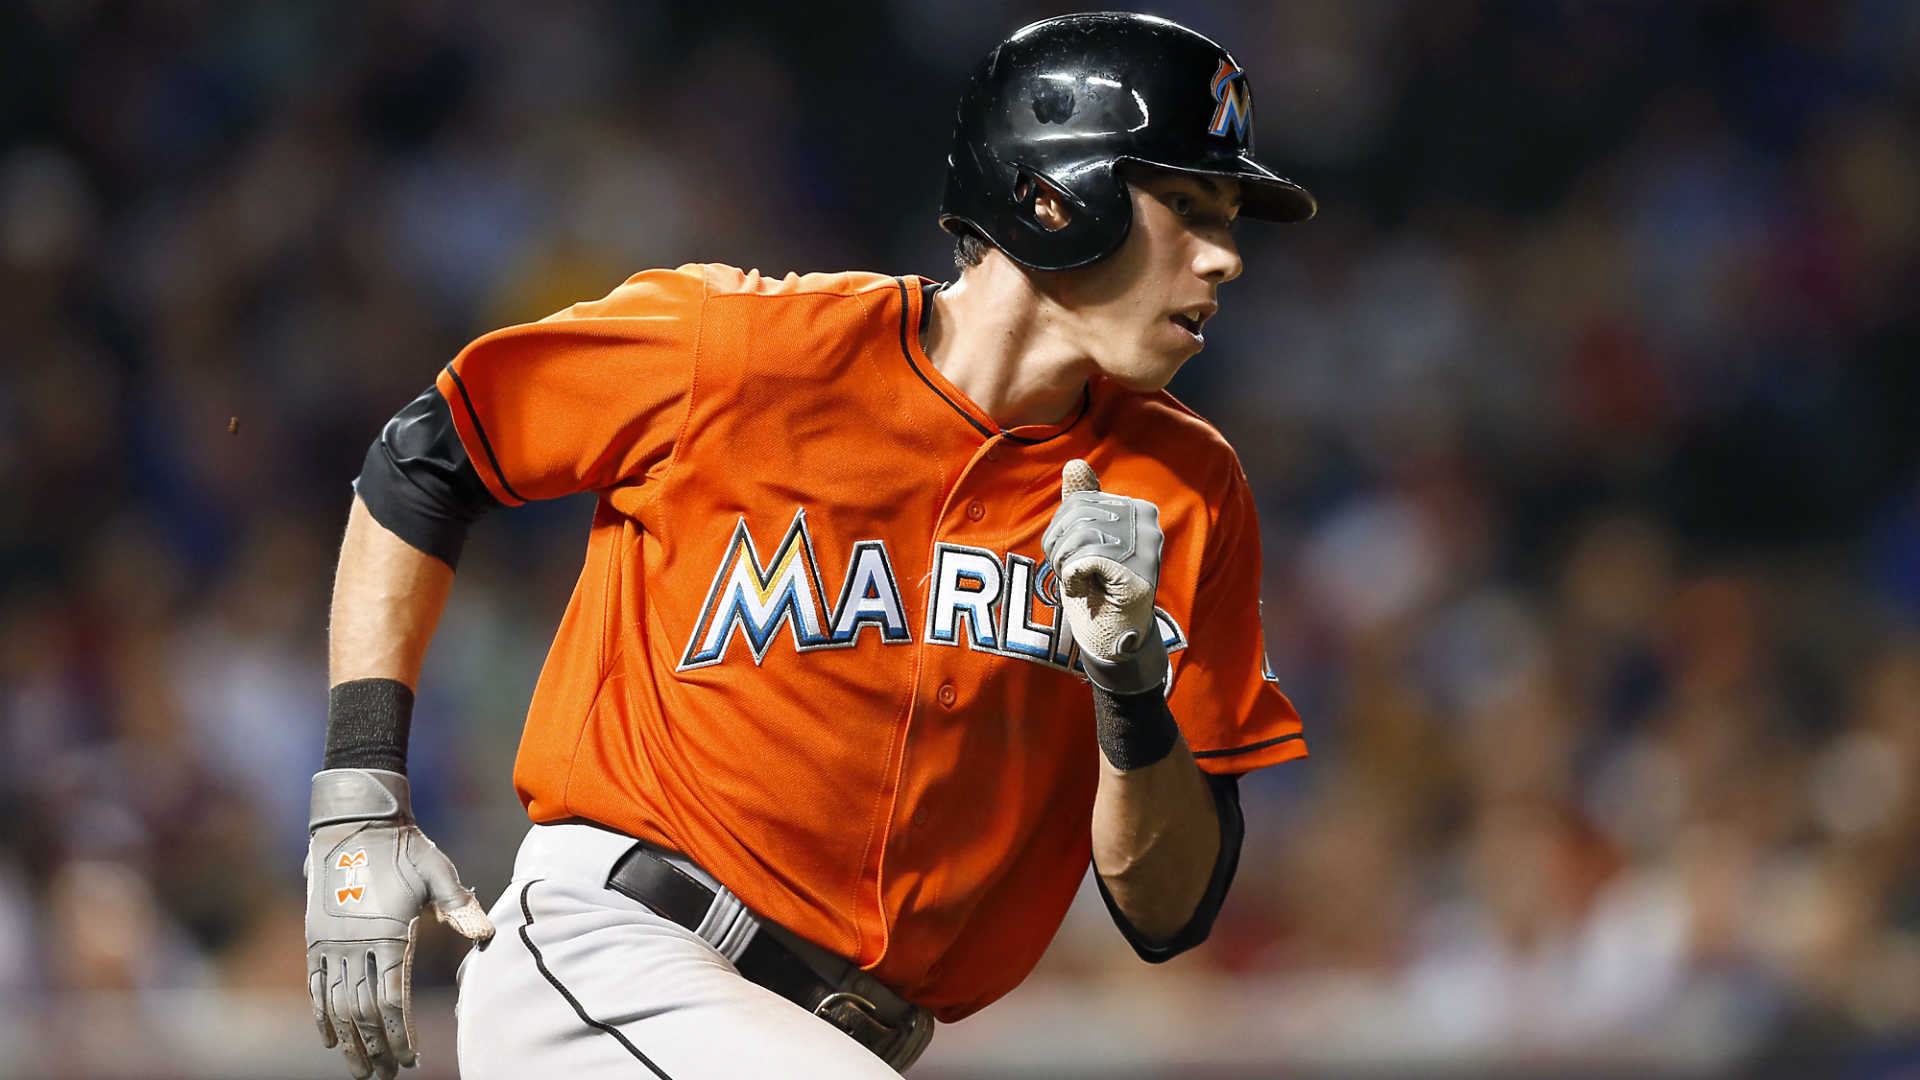 Fantasy baseball sleepers: Marlins' Yelich boasts power, speed ... value?